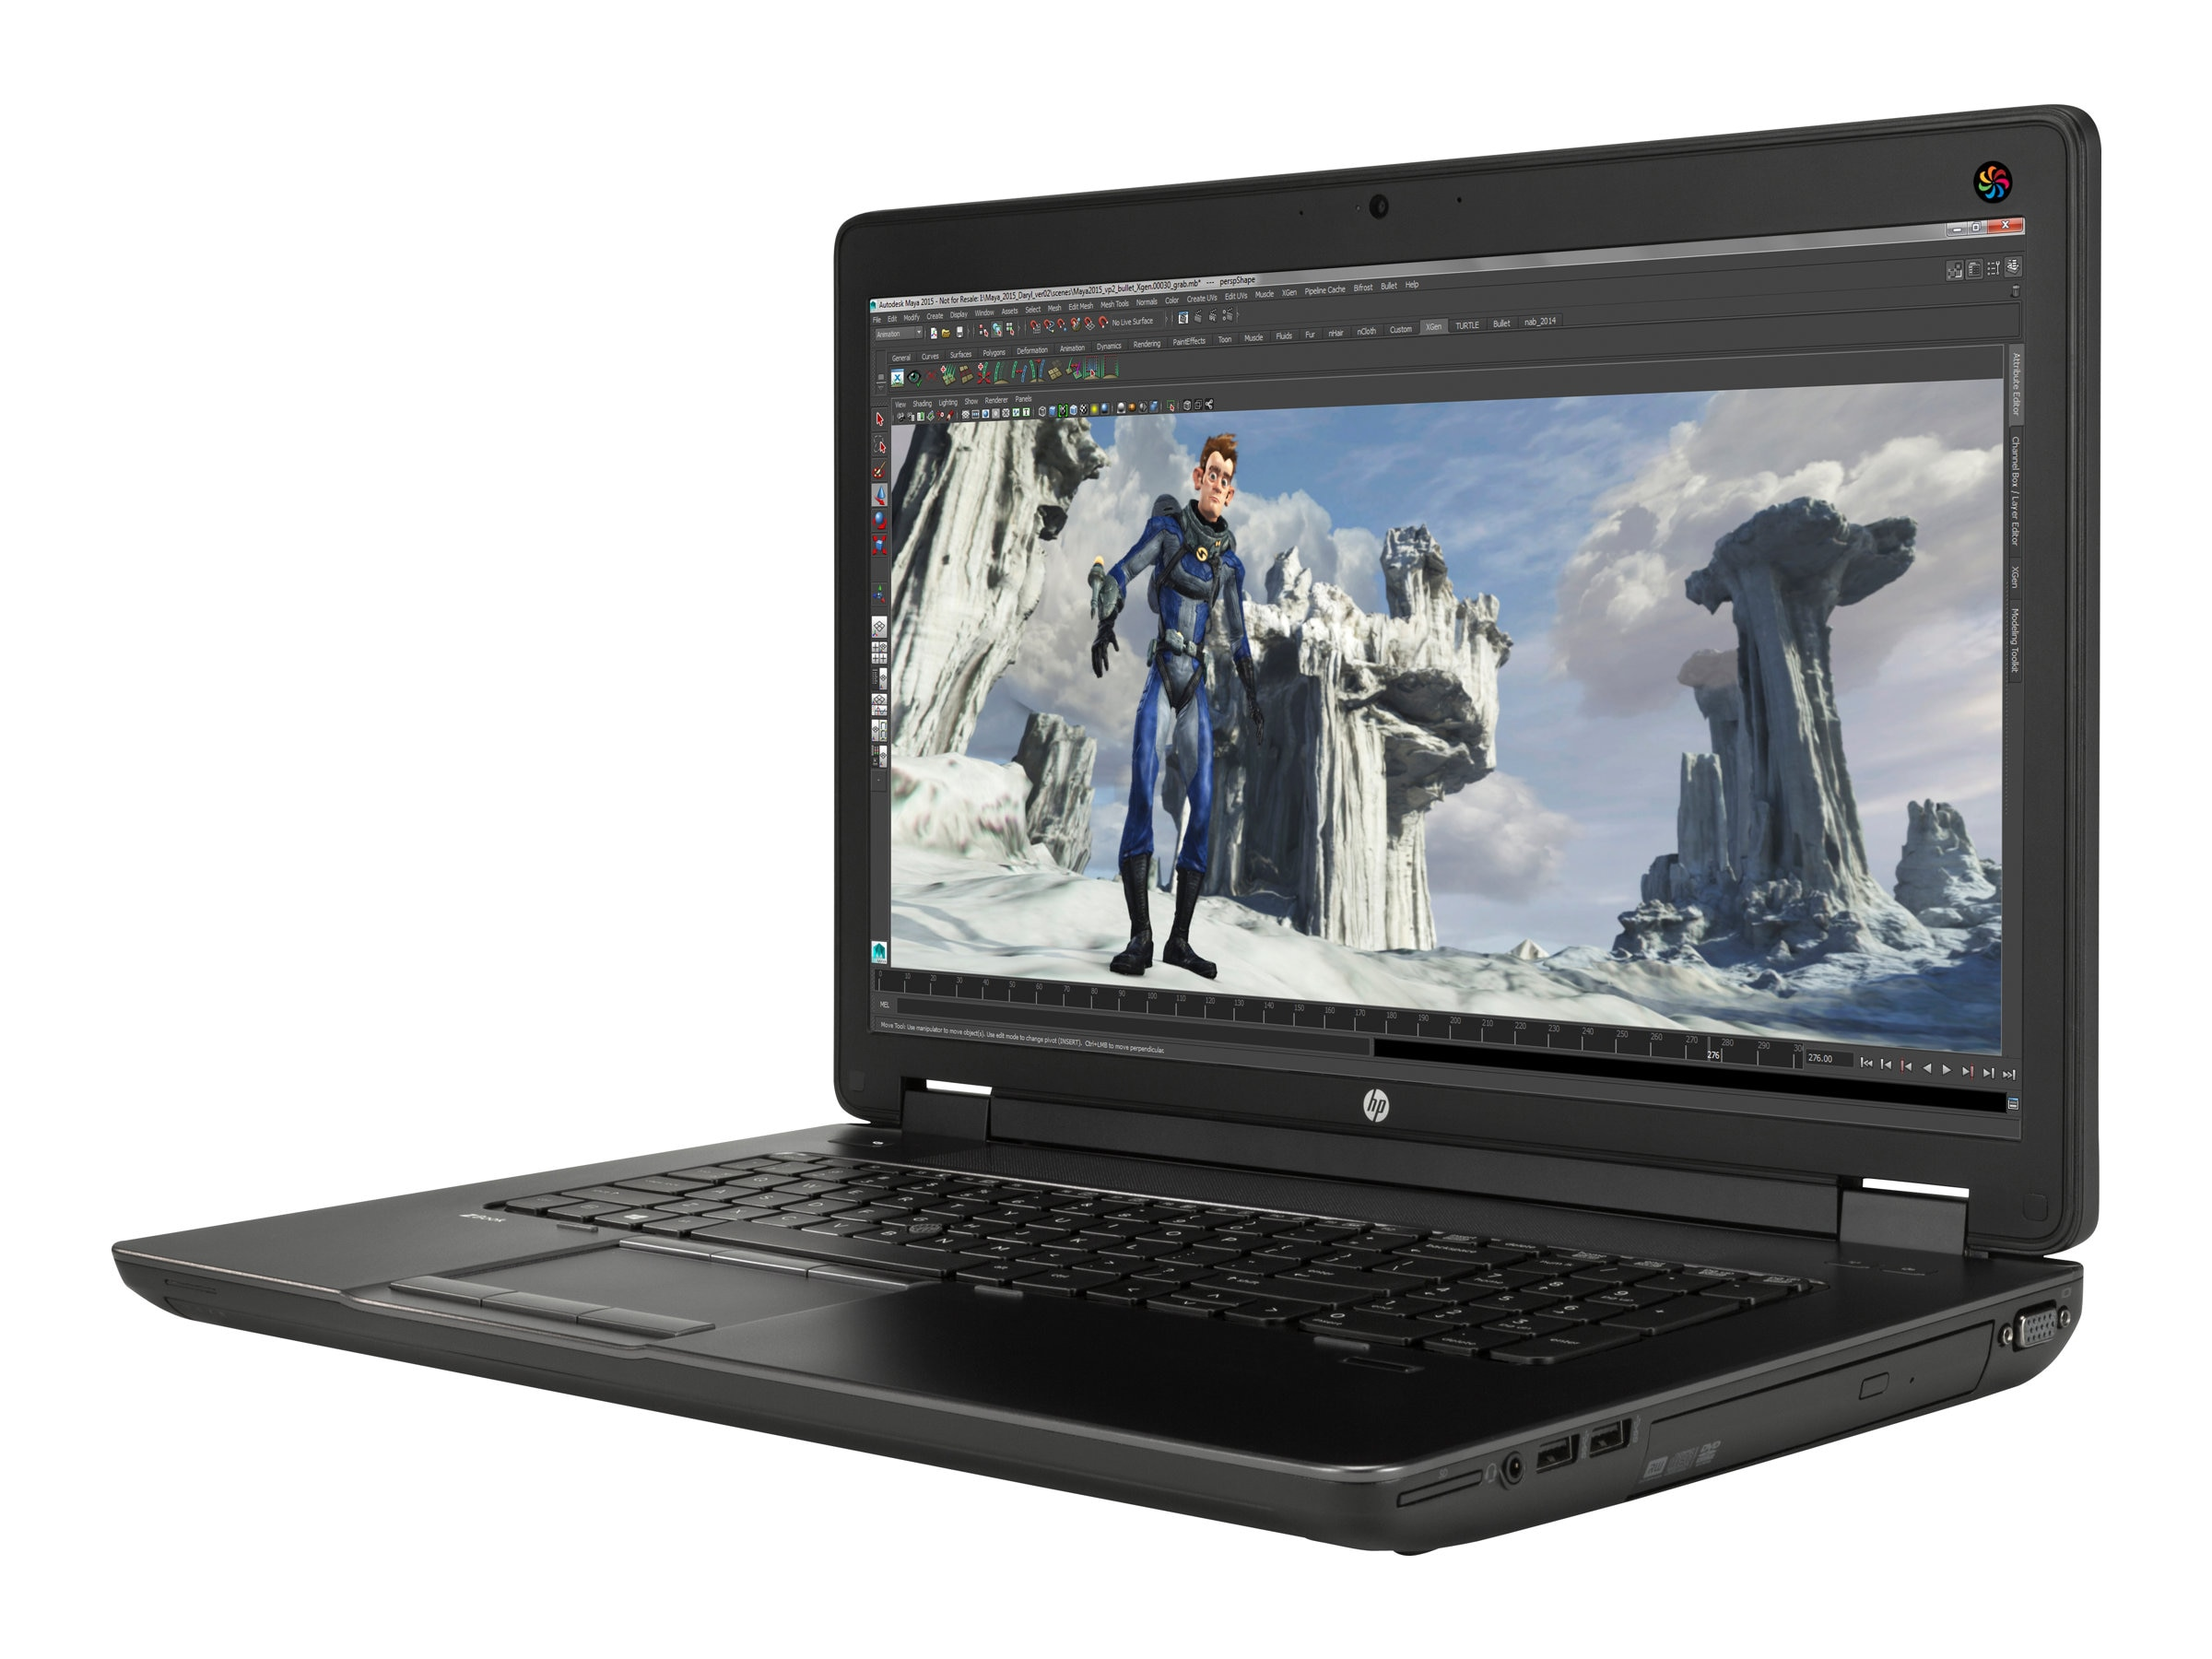 HP ZBook 17 Core i5-4210M 2.6GHz 4GB 256GB SSD DVD+RW BT 17.3